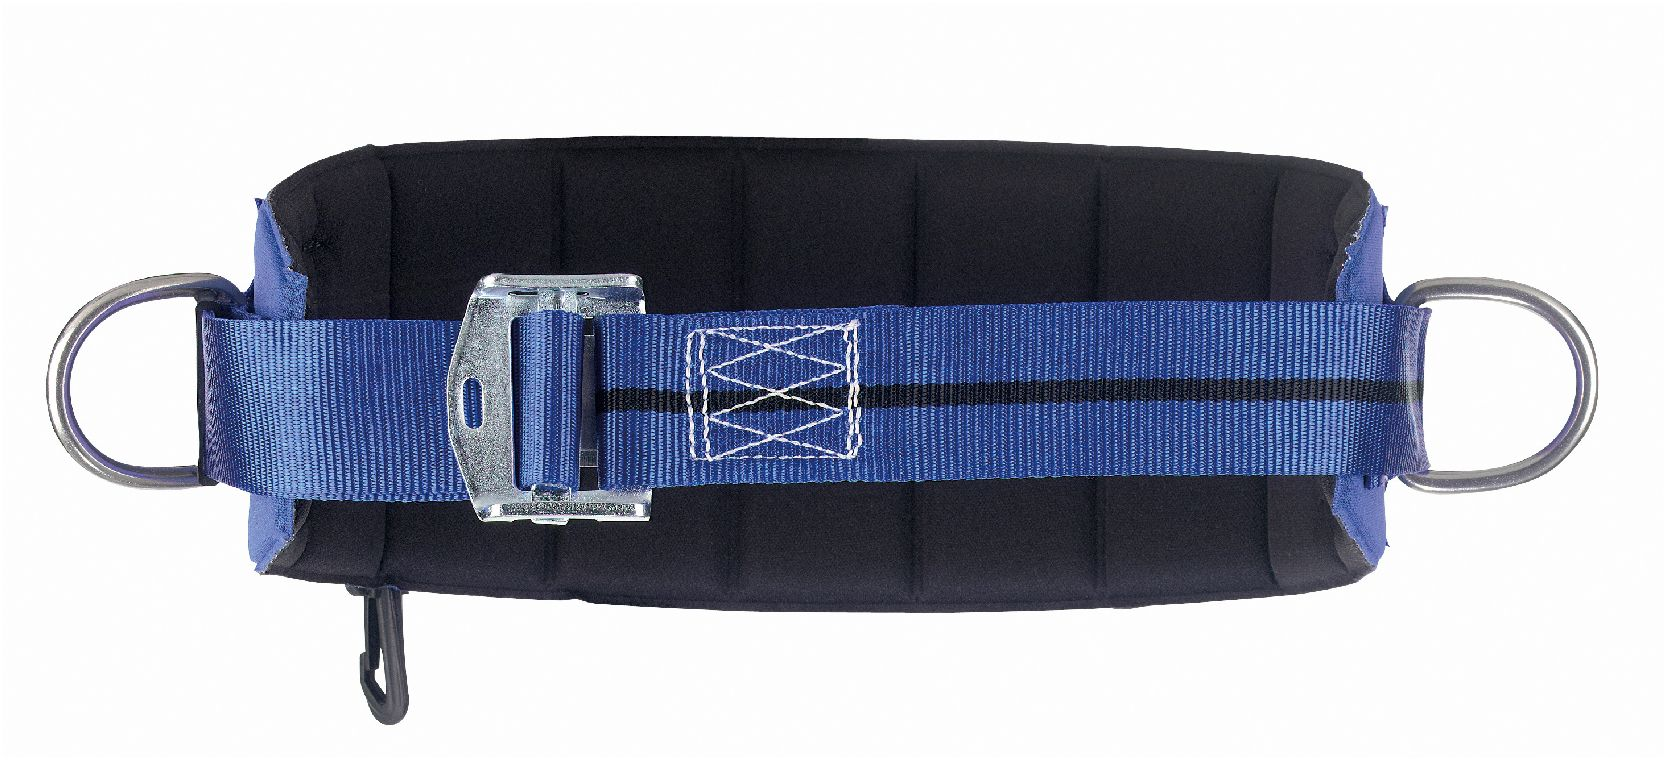 MILLER POSITIONING BELT TITAN